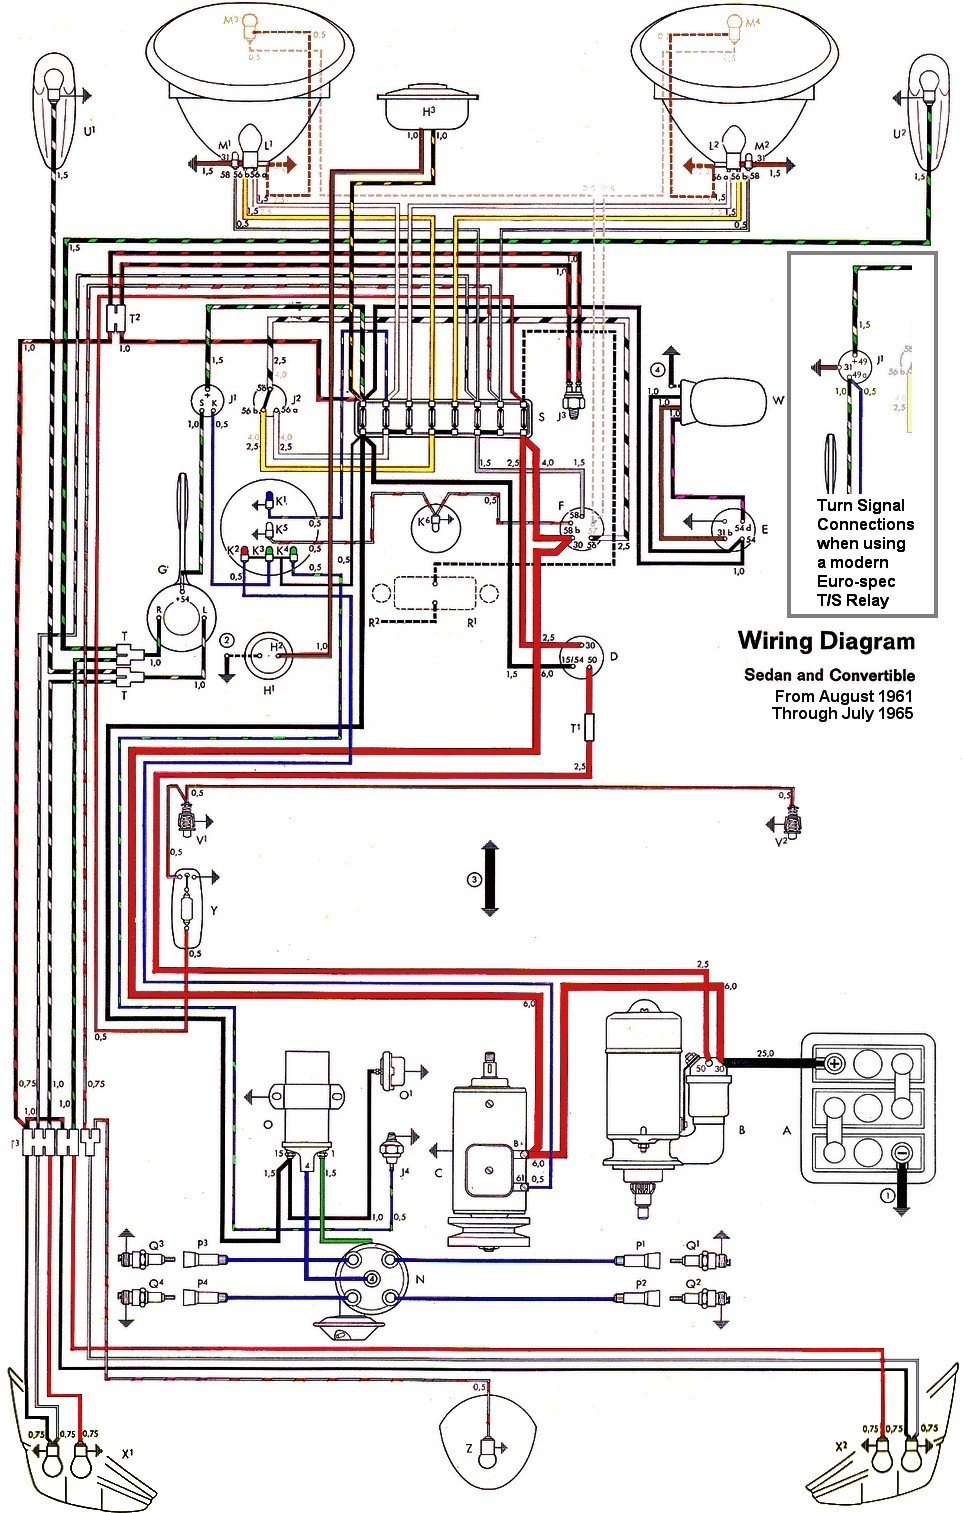 bug_62 65withinset thesamba com type 1 wiring diagrams 1963 vw wiring diagram at alyssarenee.co